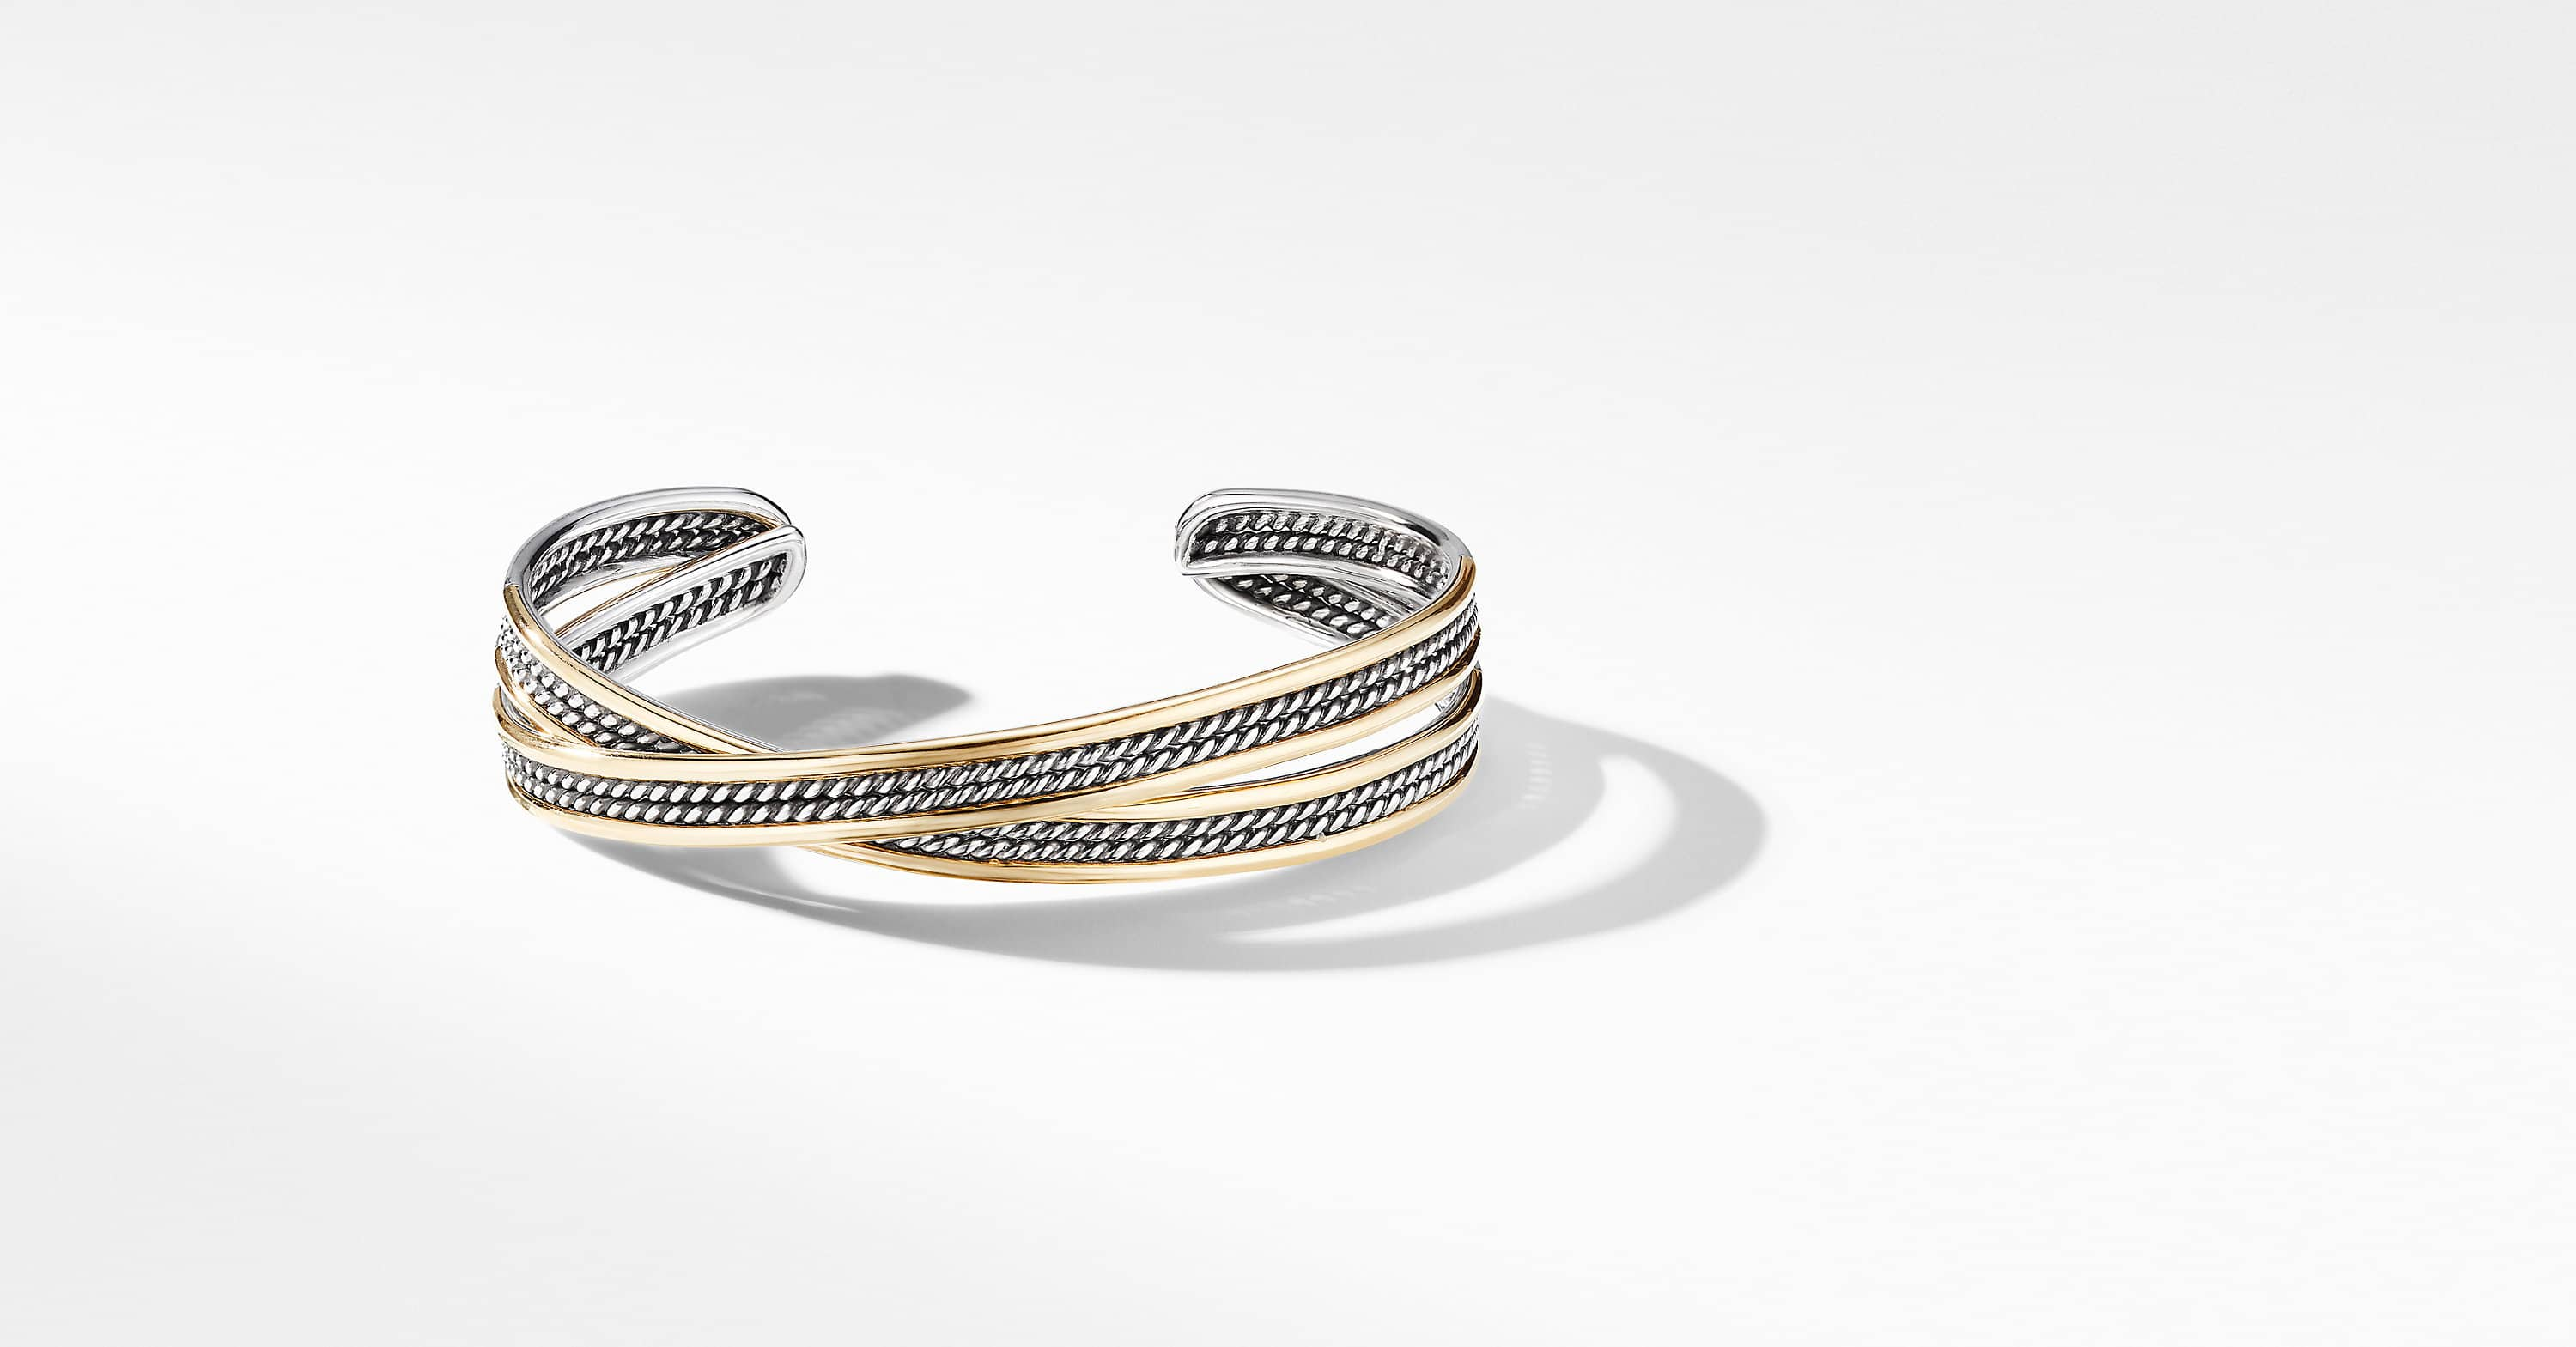 DY Origami Cuff Bracelet with 18K Yellow Gold, 14mm